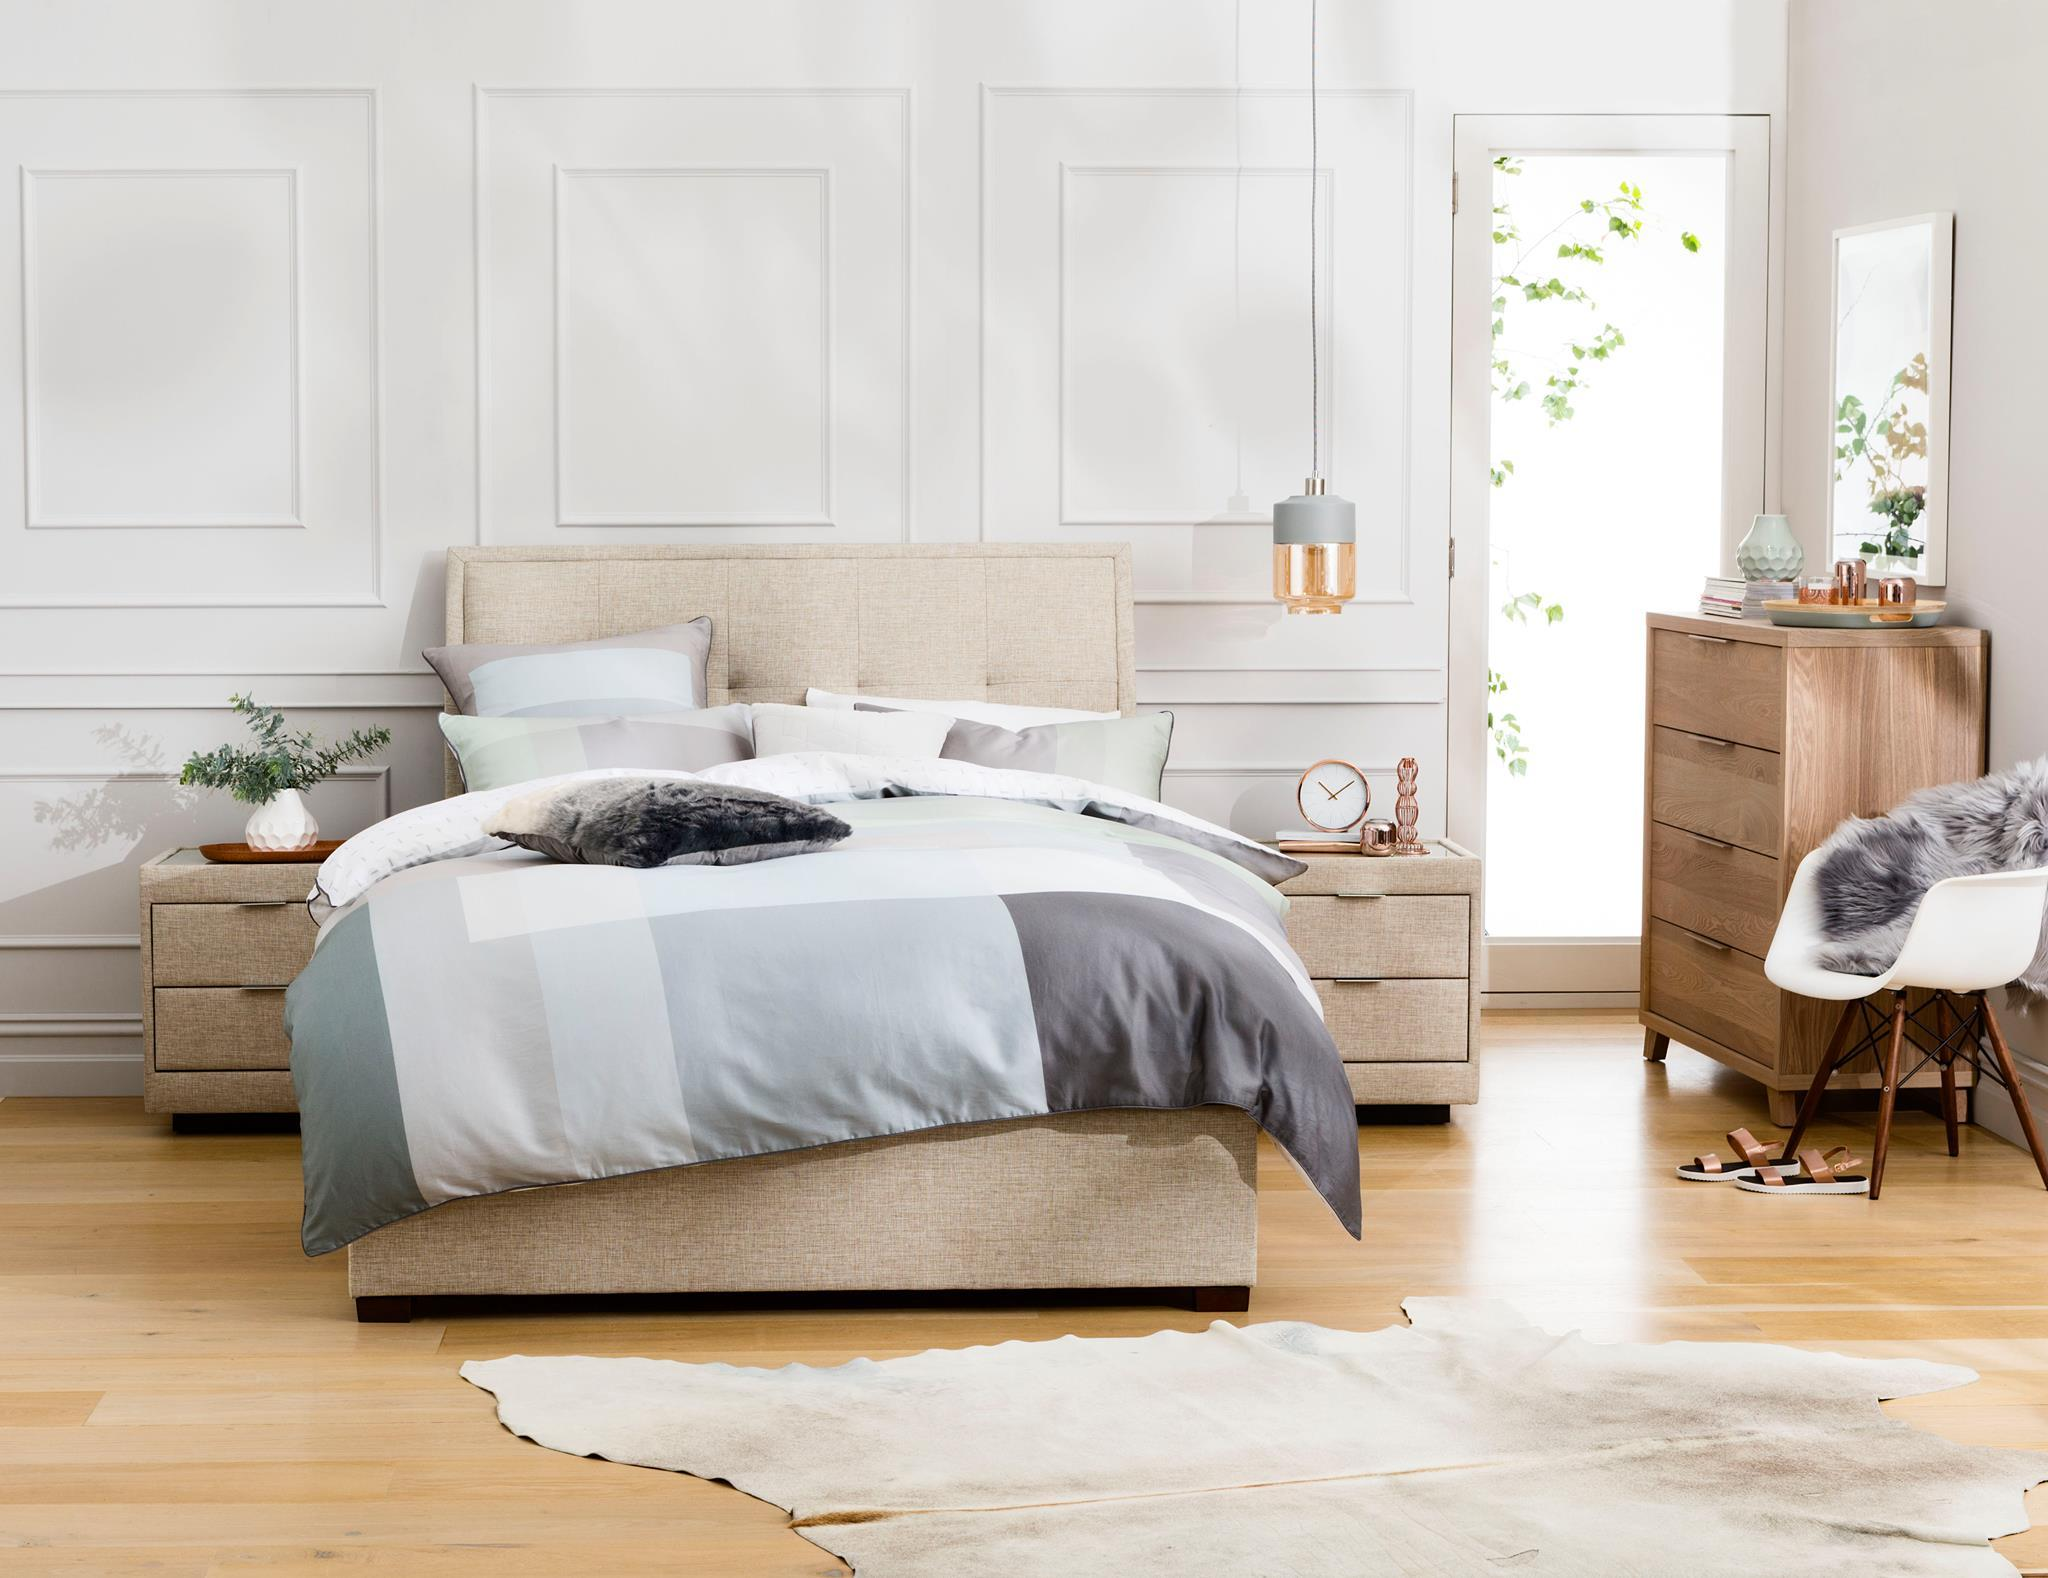 Forty Winks – Natural Talalay Latex Mattress And Latex Pillow Store In Ballina New South Wales